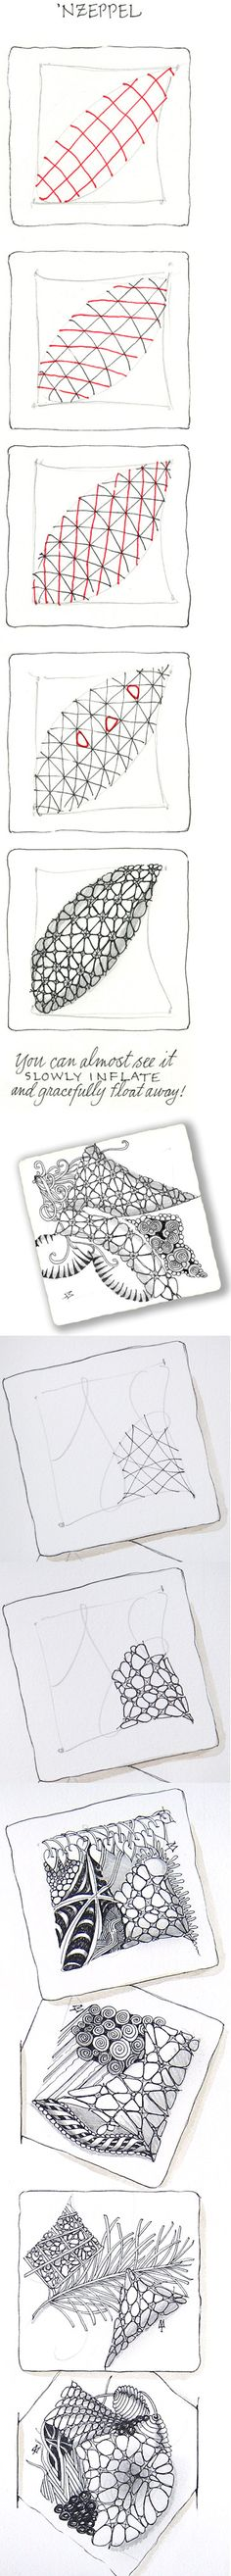 Nzeppel. Official Zentangle with variation and examples.